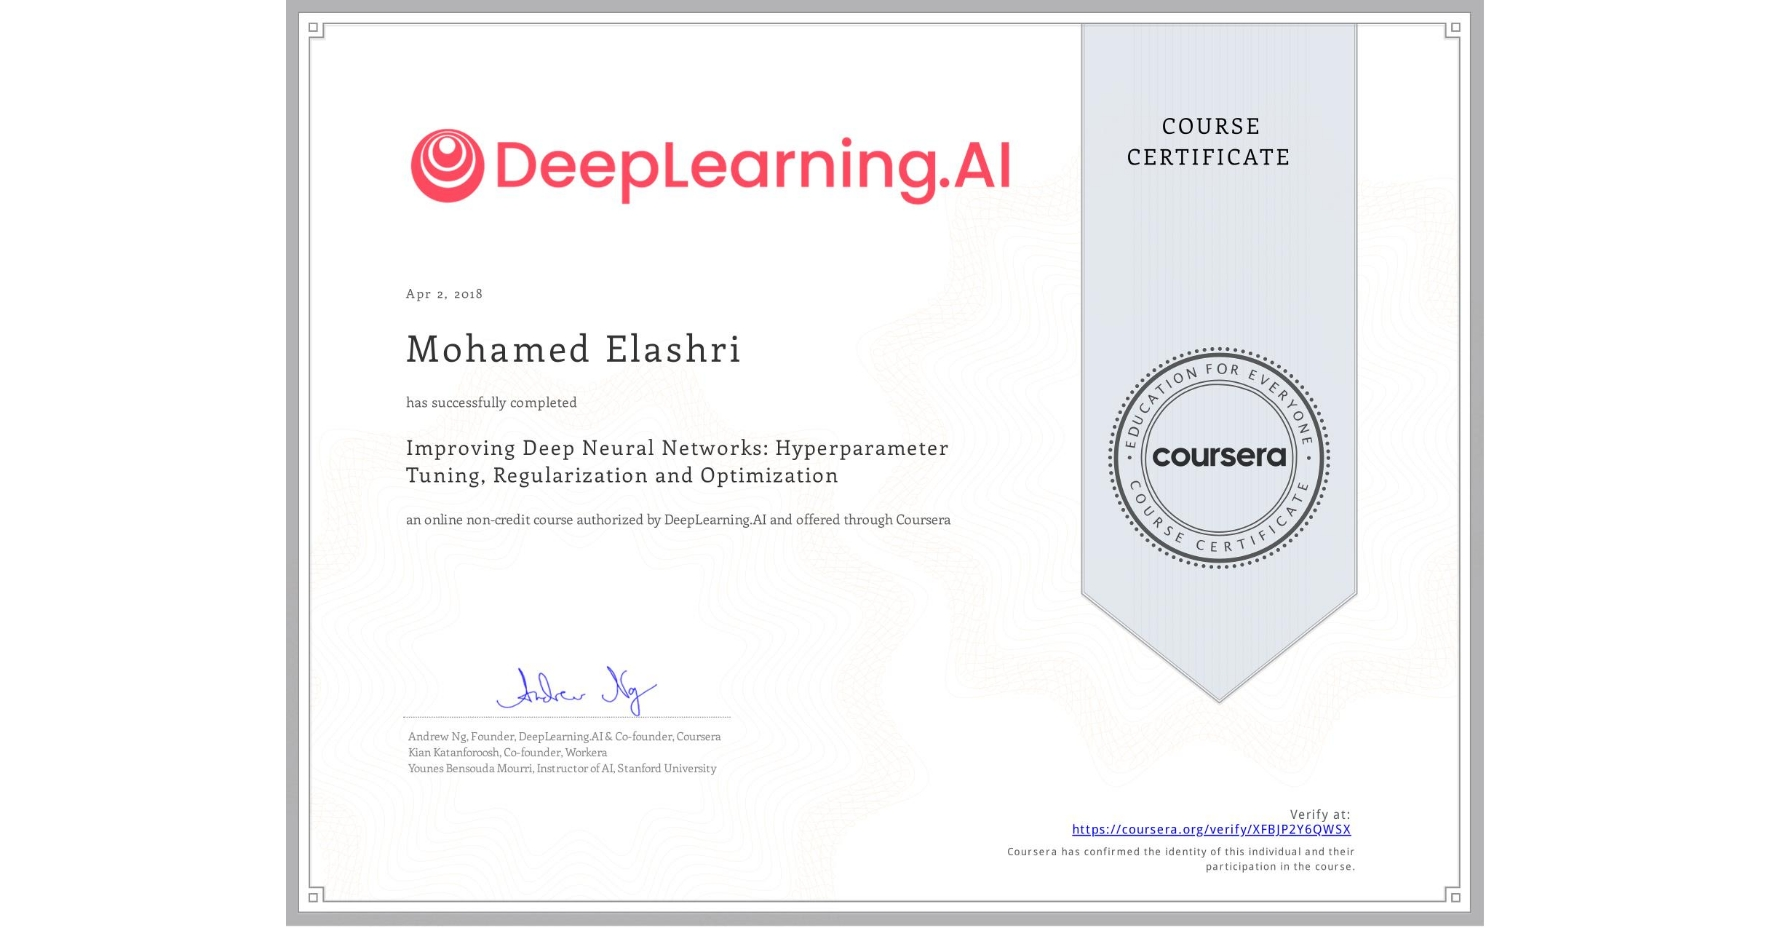 View certificate for Mohamed Elashri, Improving Deep Neural Networks: Hyperparameter tuning, Regularization and Optimization, an online non-credit course authorized by DeepLearning.AI and offered through Coursera